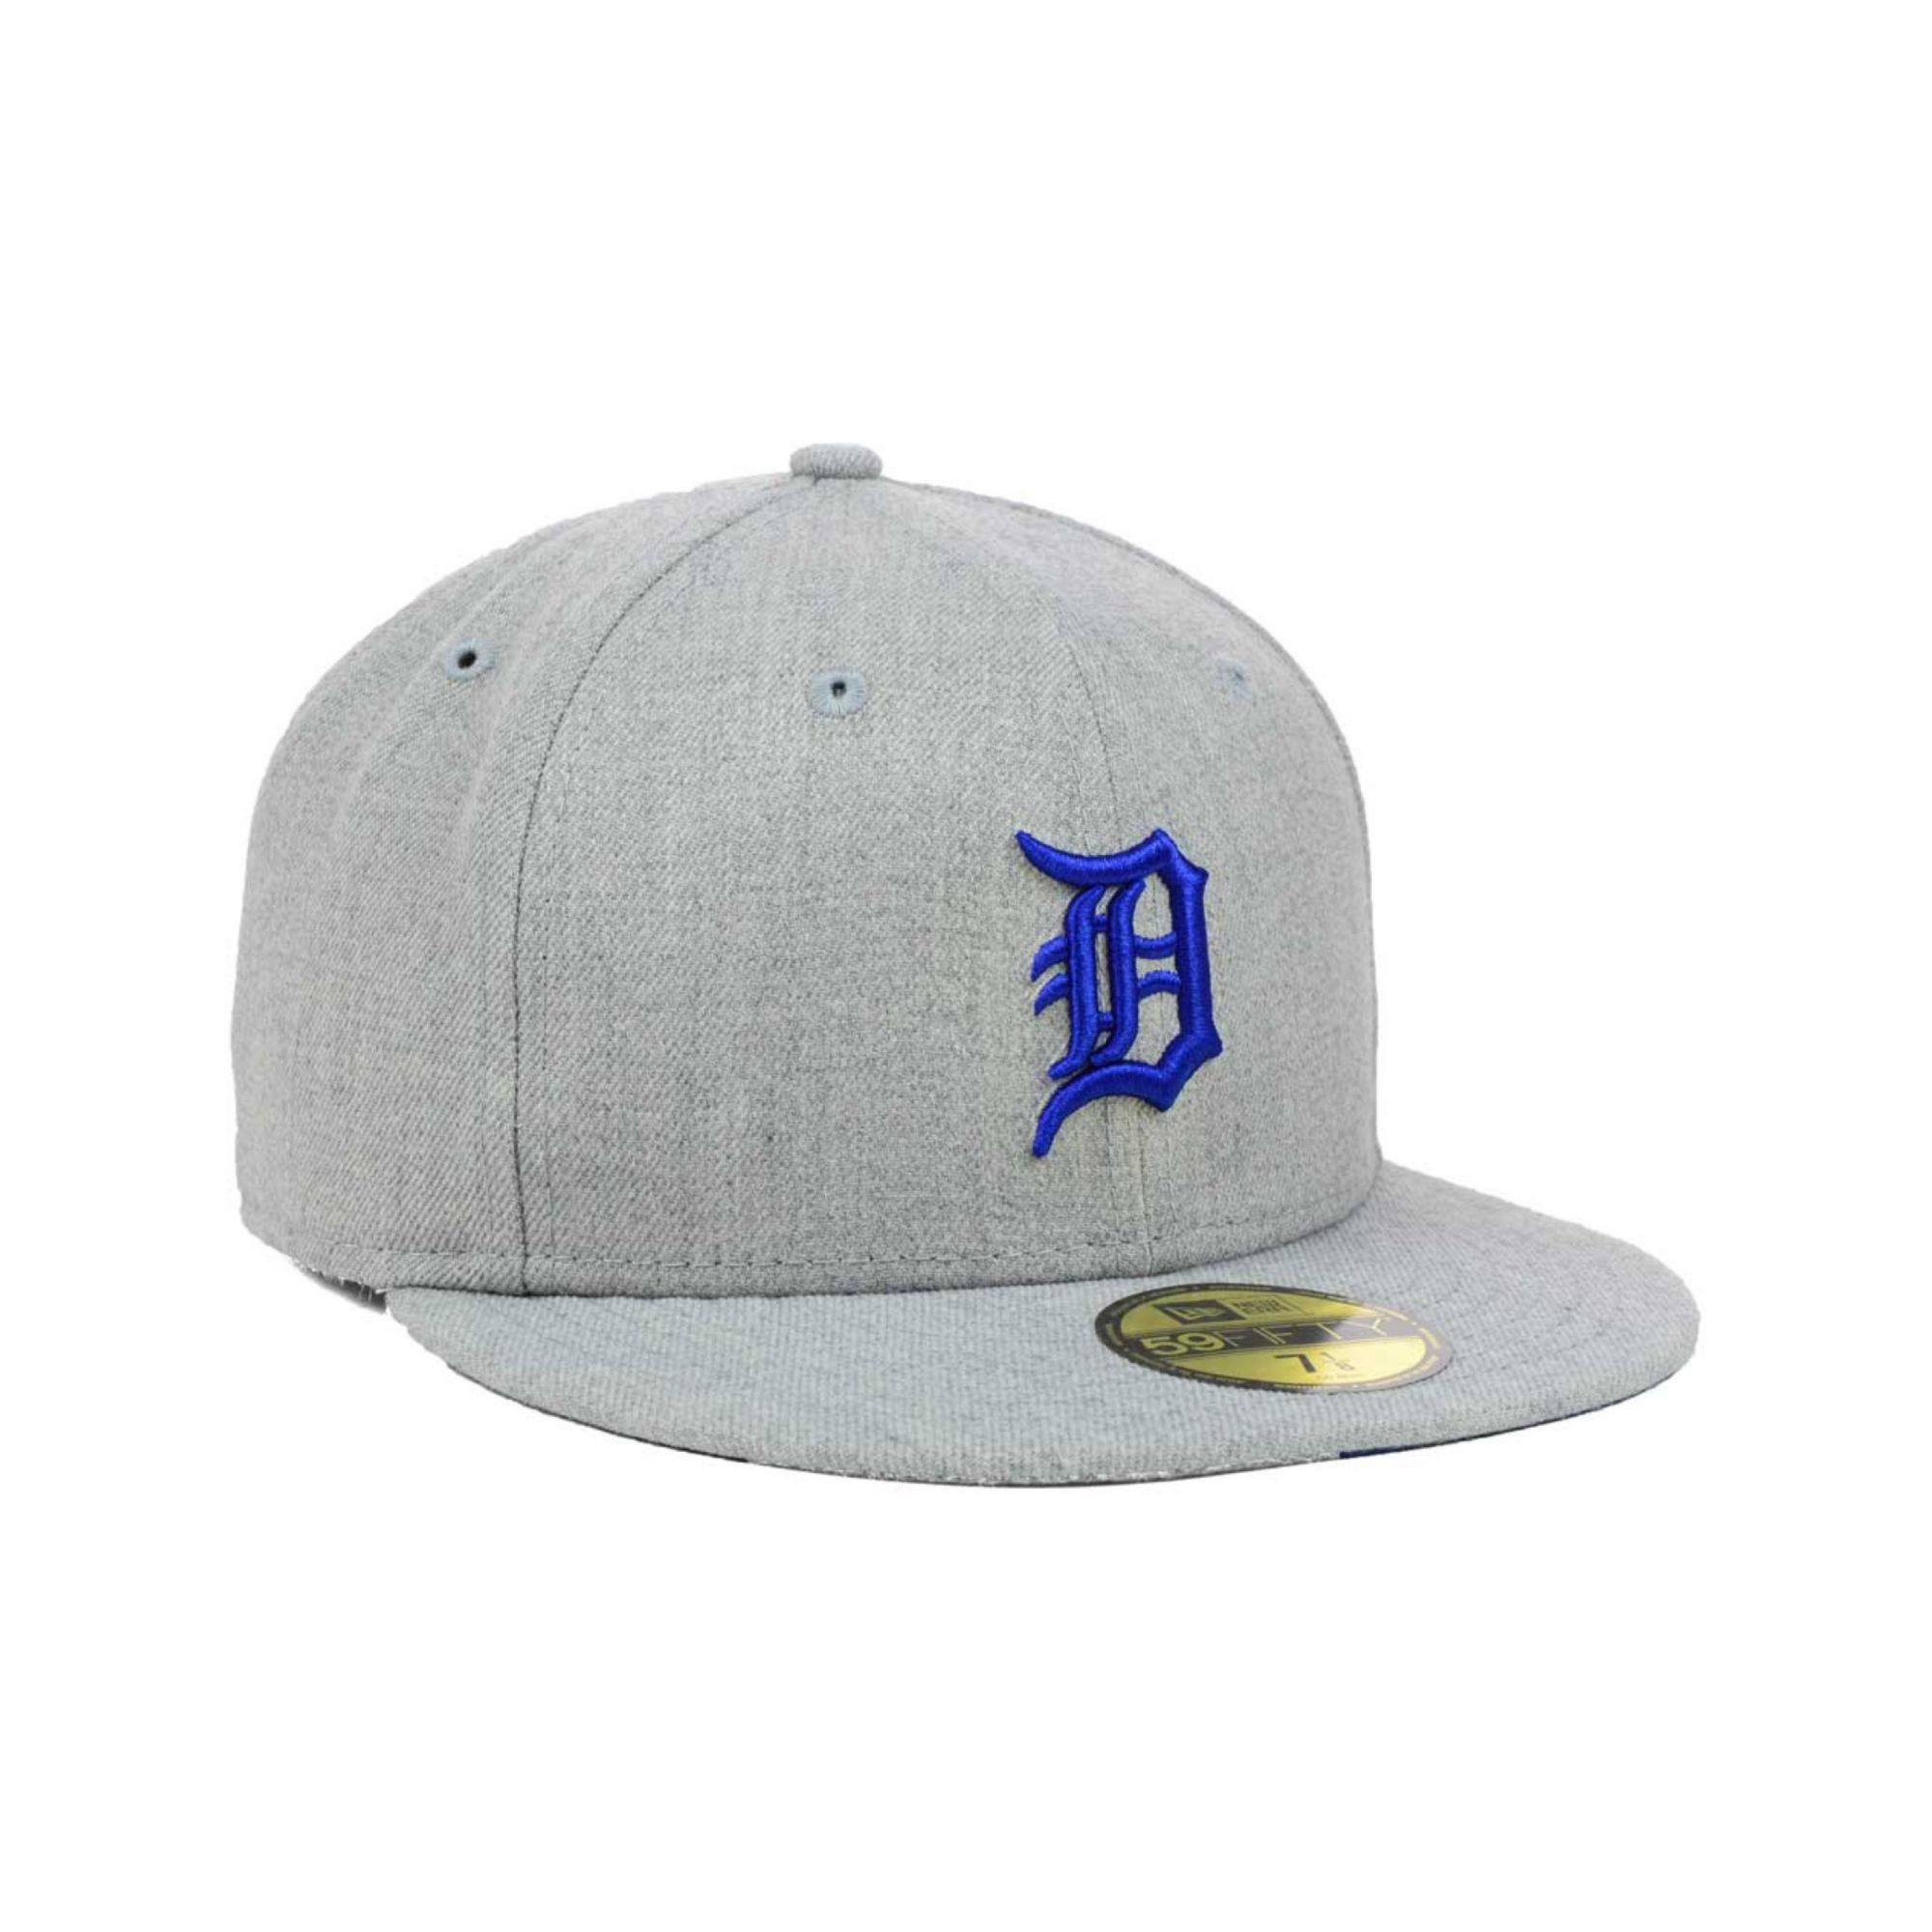 7a3f42b4d66 ... 9fifty snapback cap 749f5 44866  top quality lyst ktz detroit tigers  mlb heather basic 59fifty cap in gray for men 0eaaa